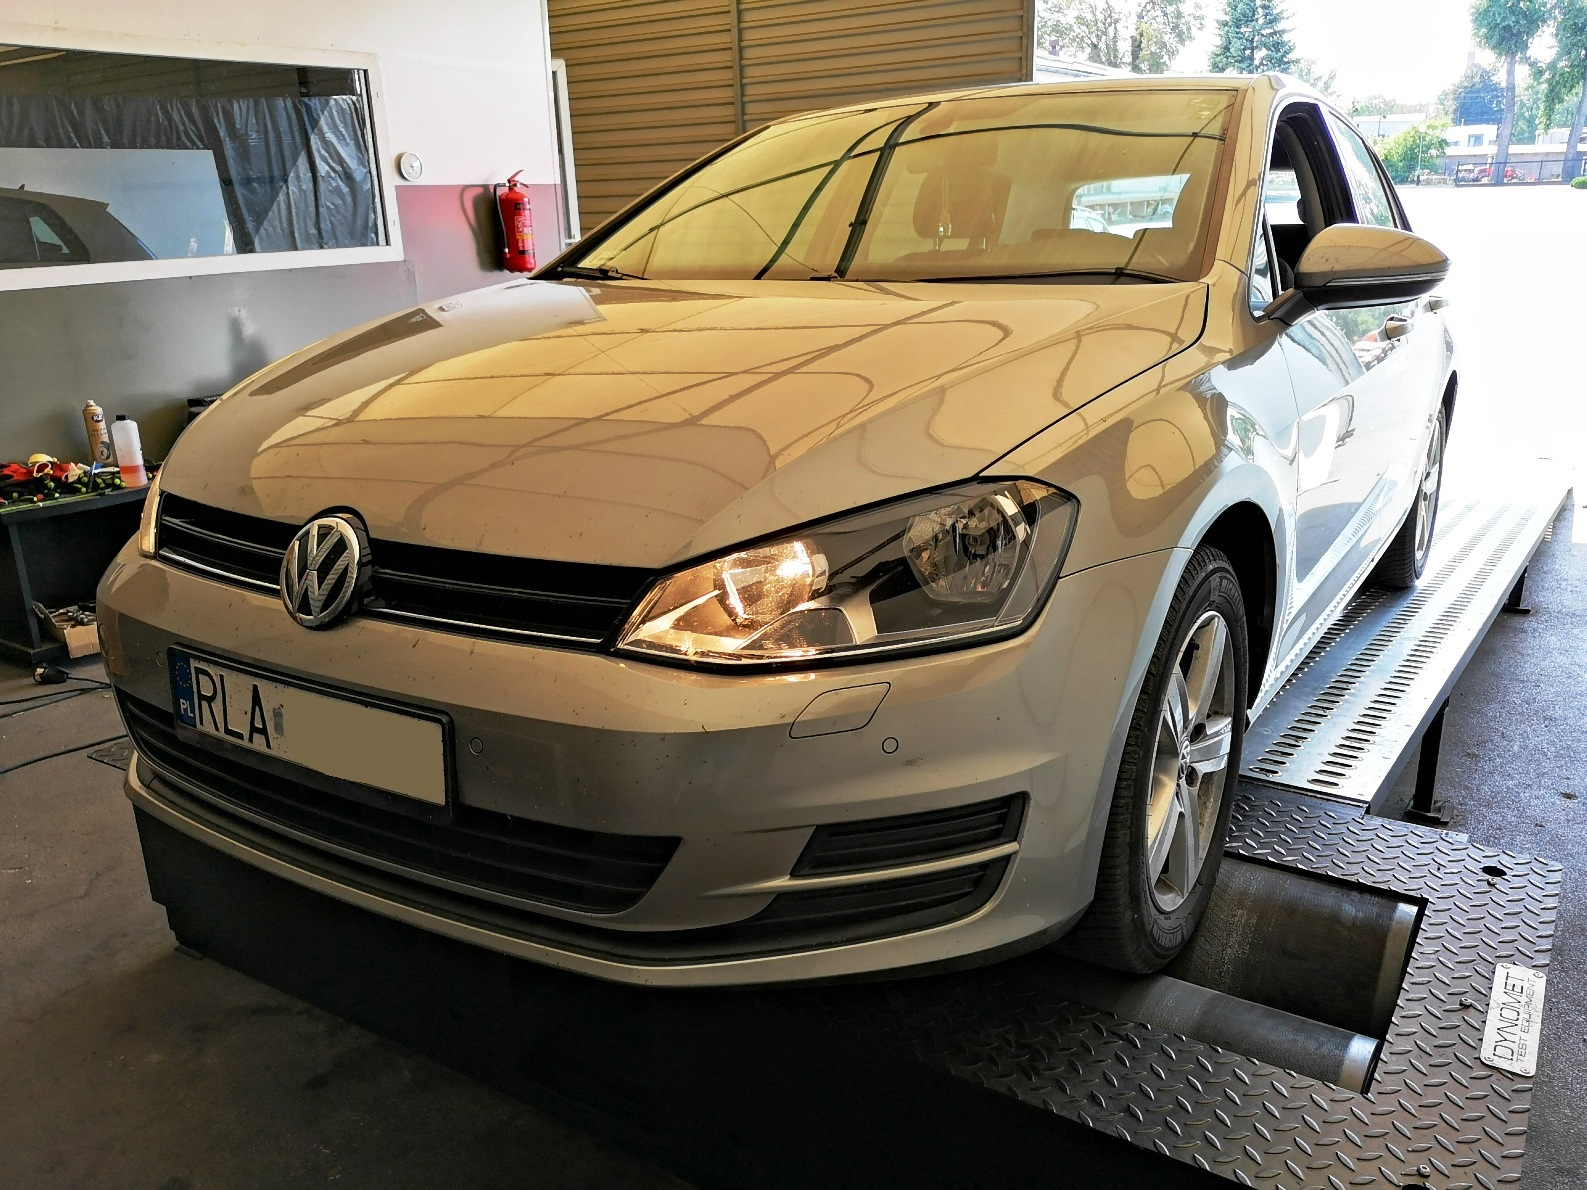 VW Golf 7 1.6TDI 105KM >> 149KM 324Nm